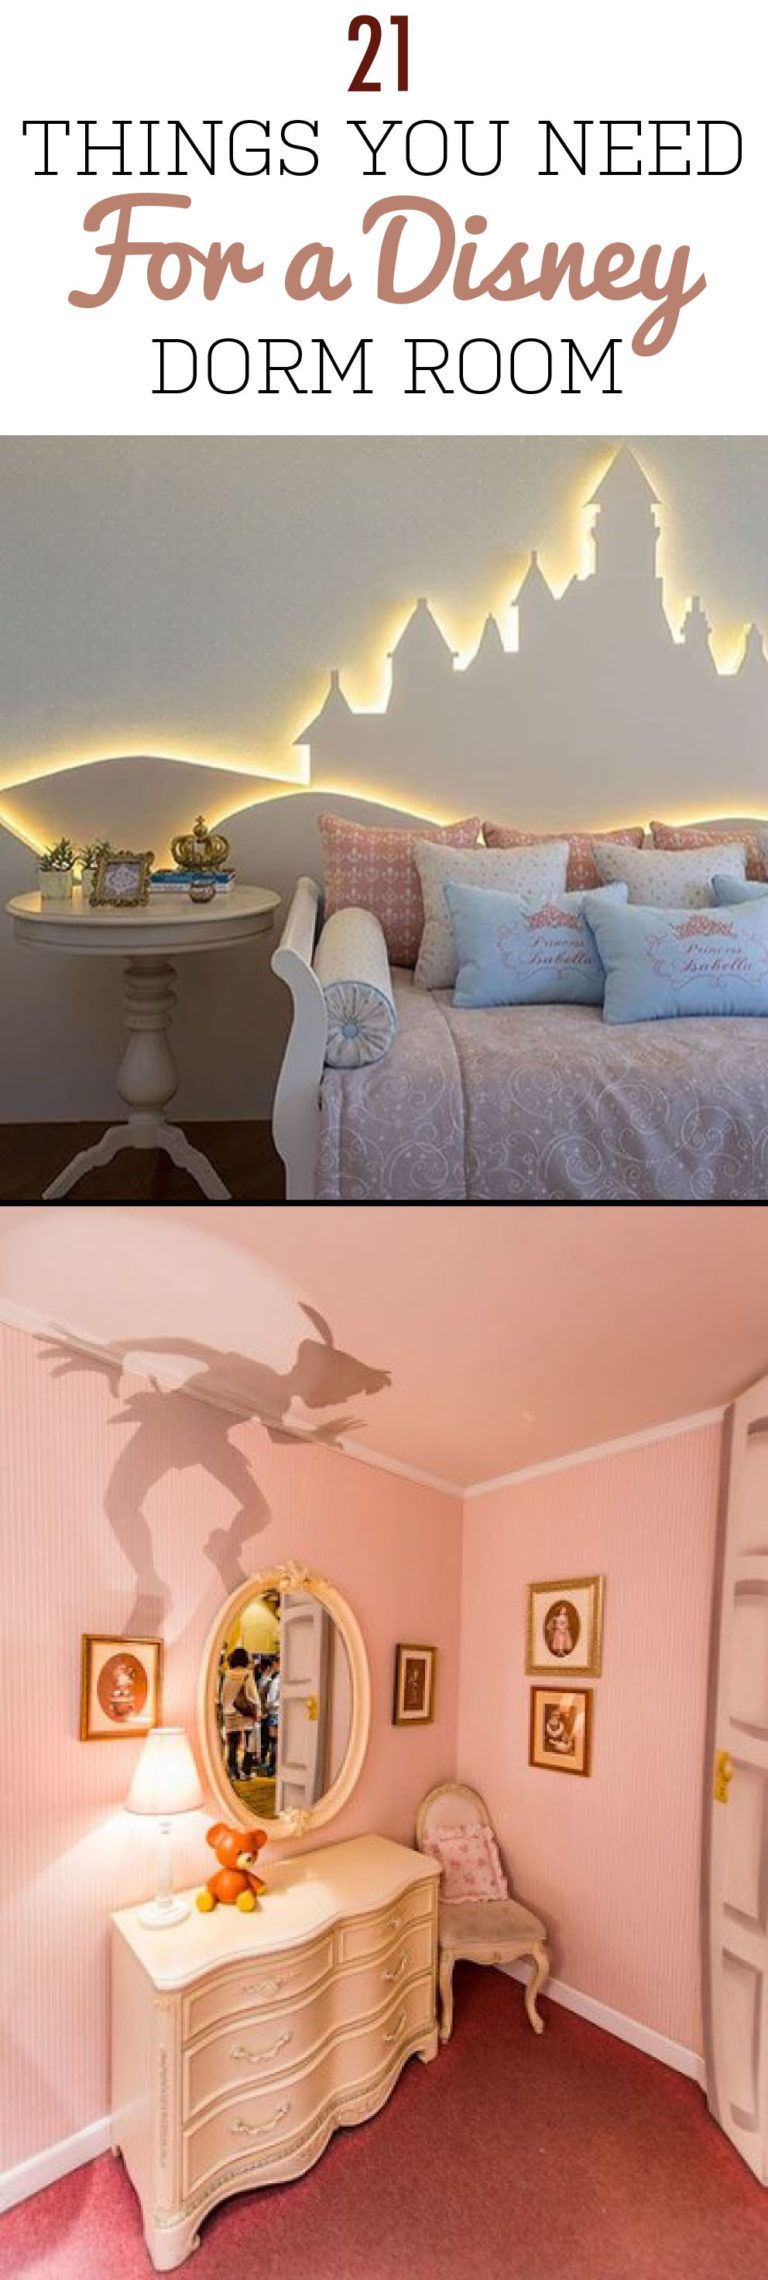 Photo of 21 Things You Need for a Disney Dorm Room – Society19